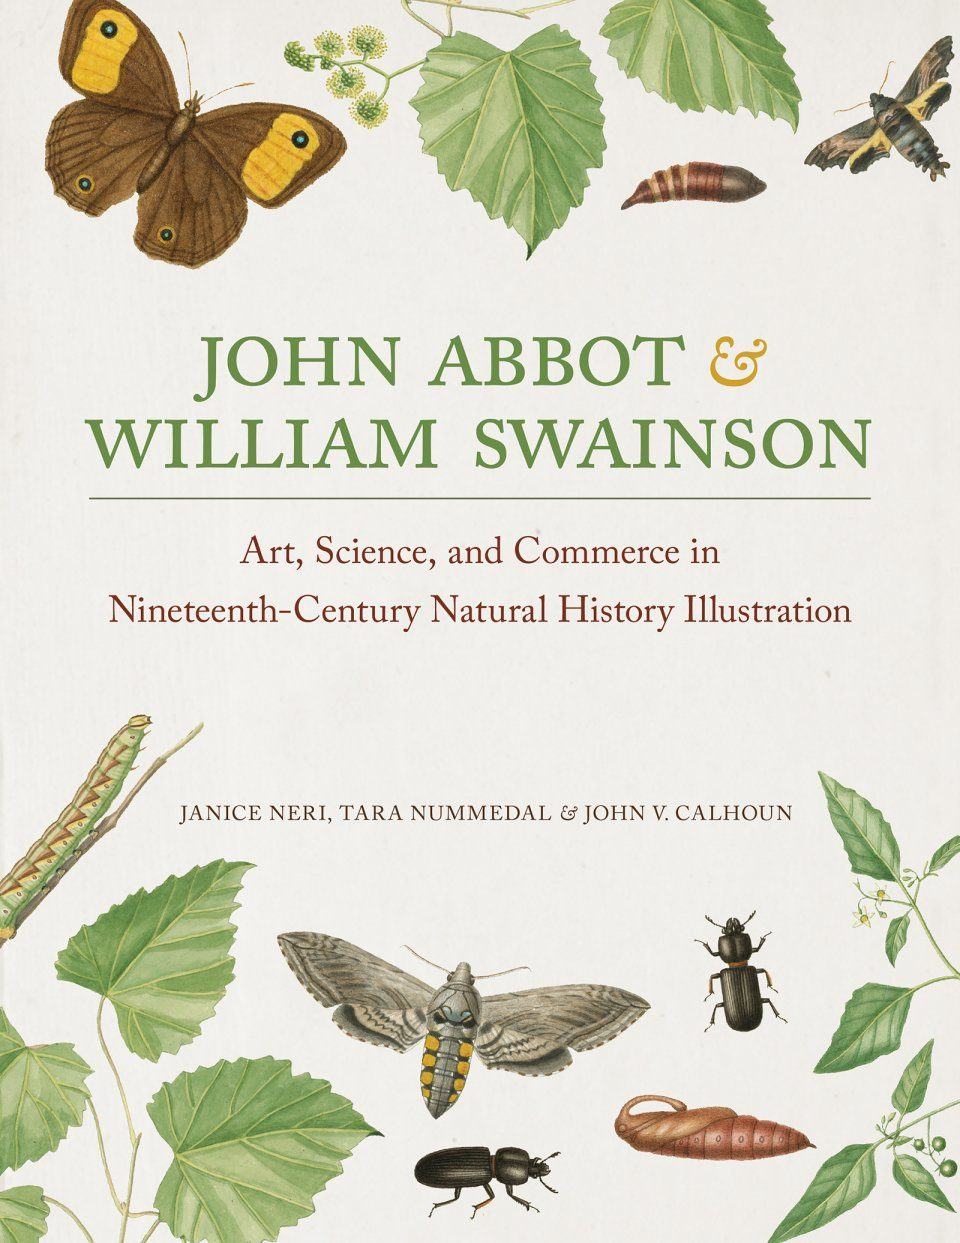 John Abbot and William Swainson